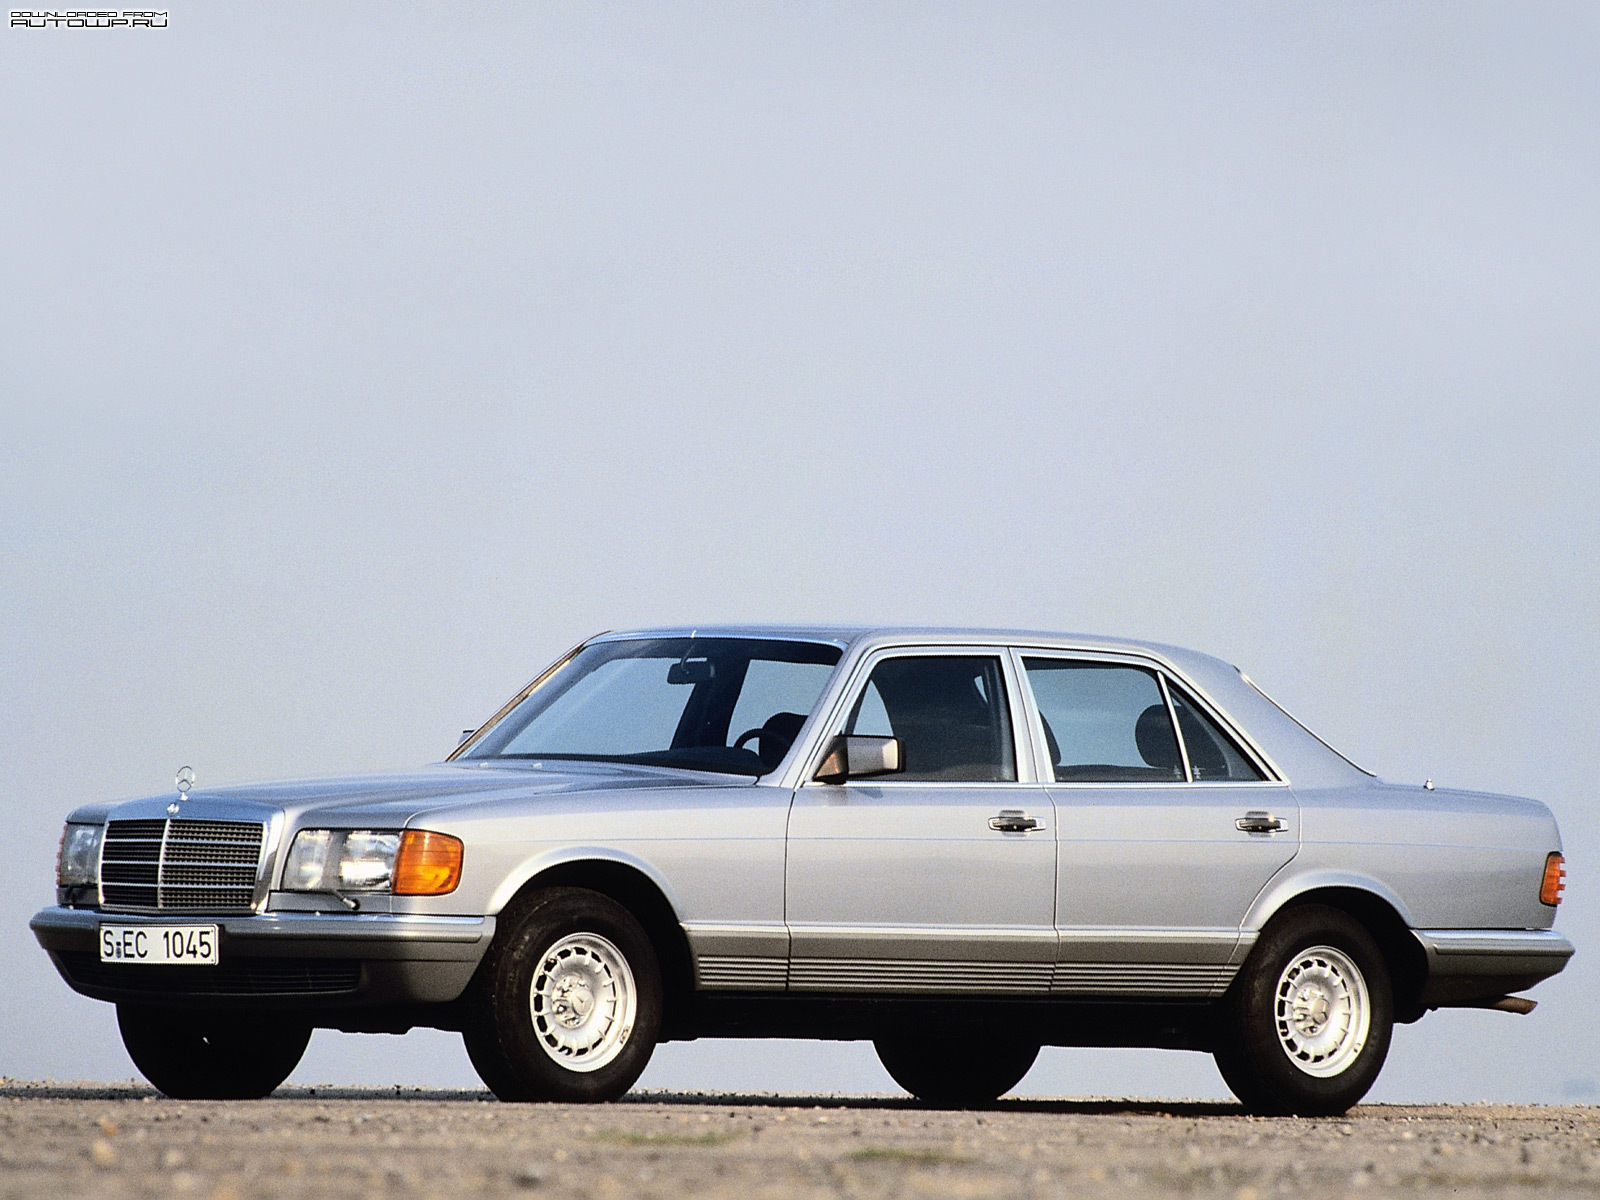 Mercedes benz s class w126 picture 76808 mercedes benz for Mercedes benz w126